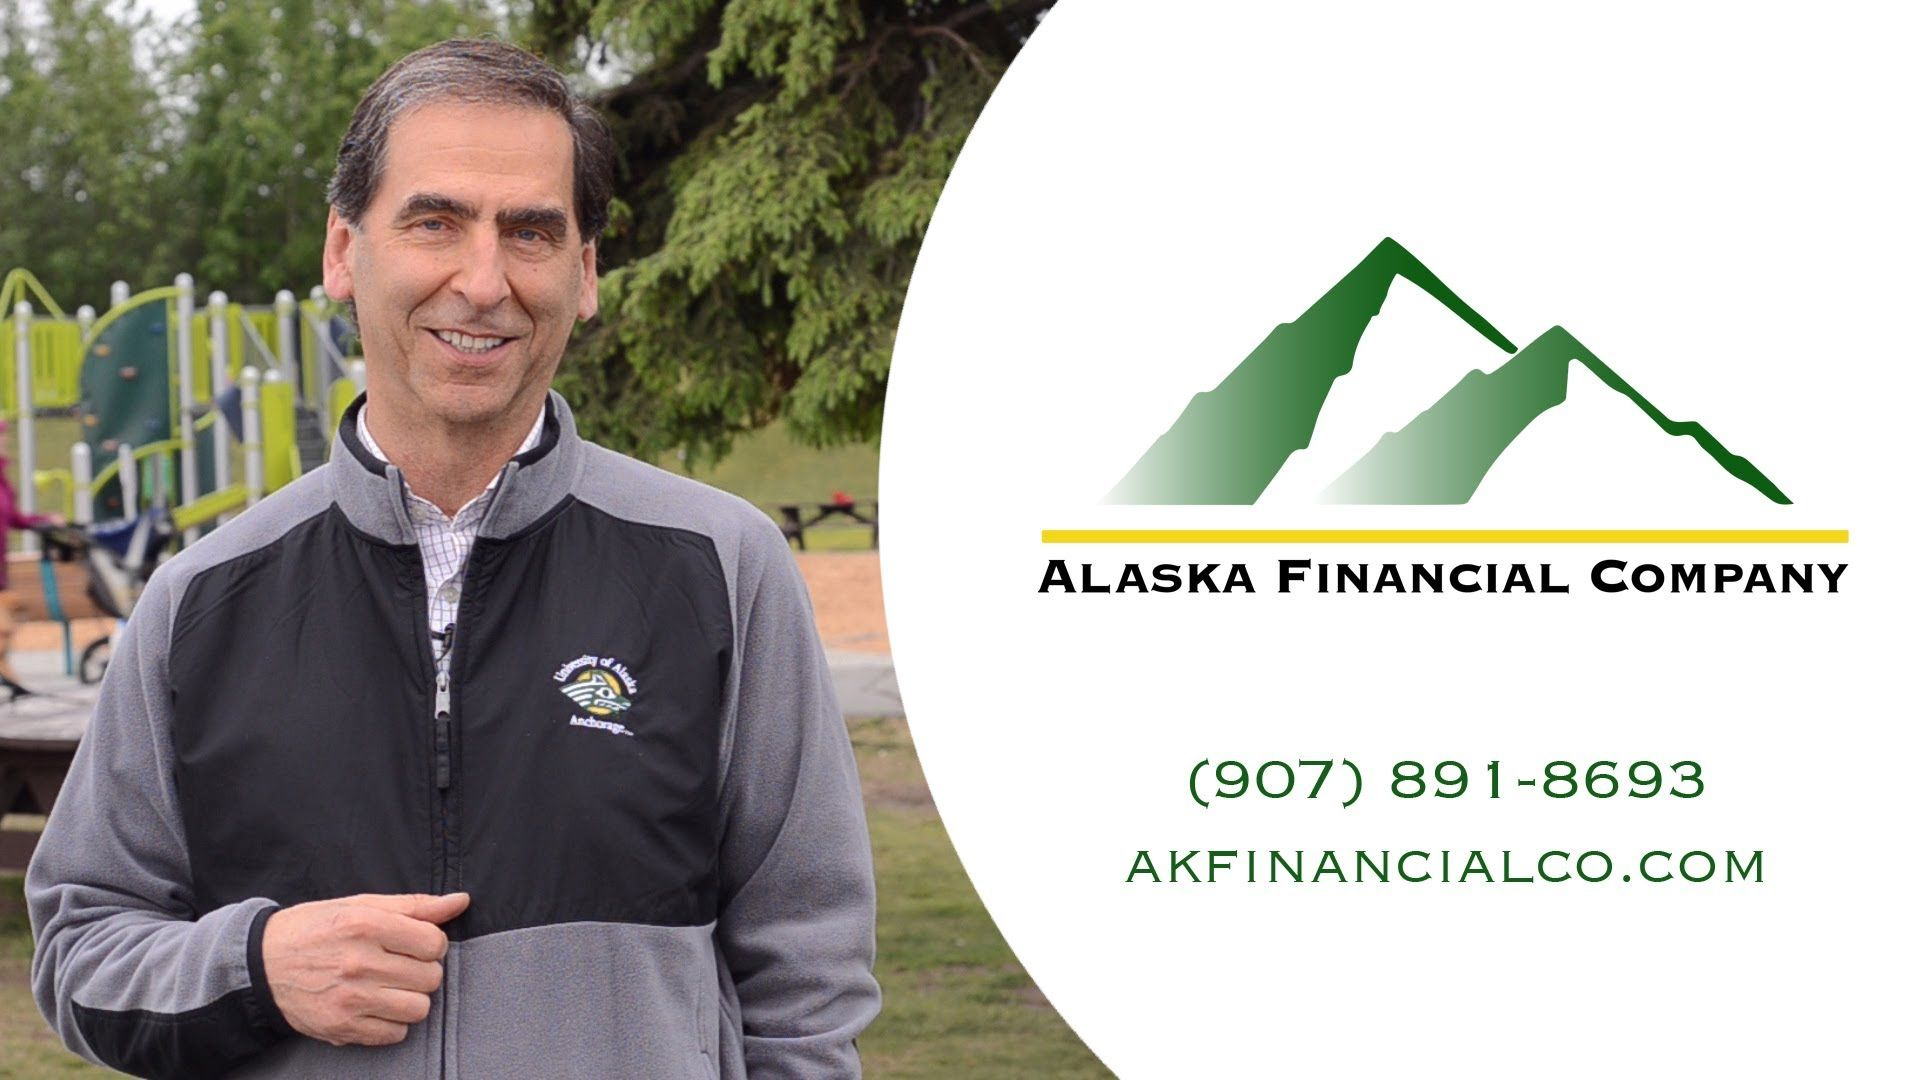 Message A Check Out This Post Alaska Financial Company Allows You To Invest In Pooled Trust Deeds Without The Hassles Or Ris Investing Financial Trust